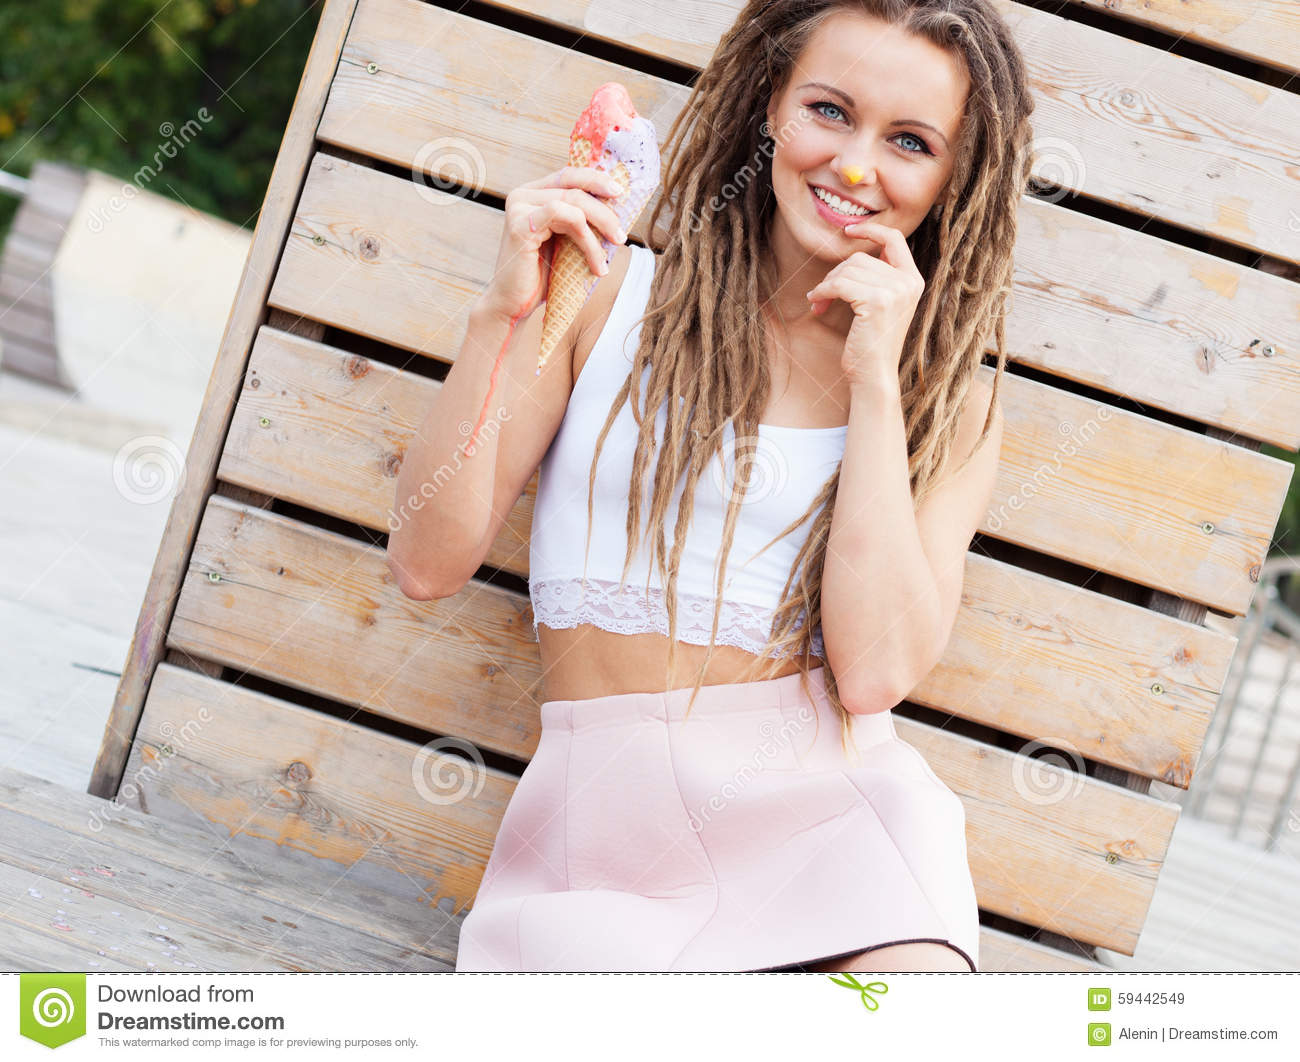 Beautiful girl with dreadlocks in pink skirt sitting on the veranda and eating colorful ice-cream cone on a warm summer evening.